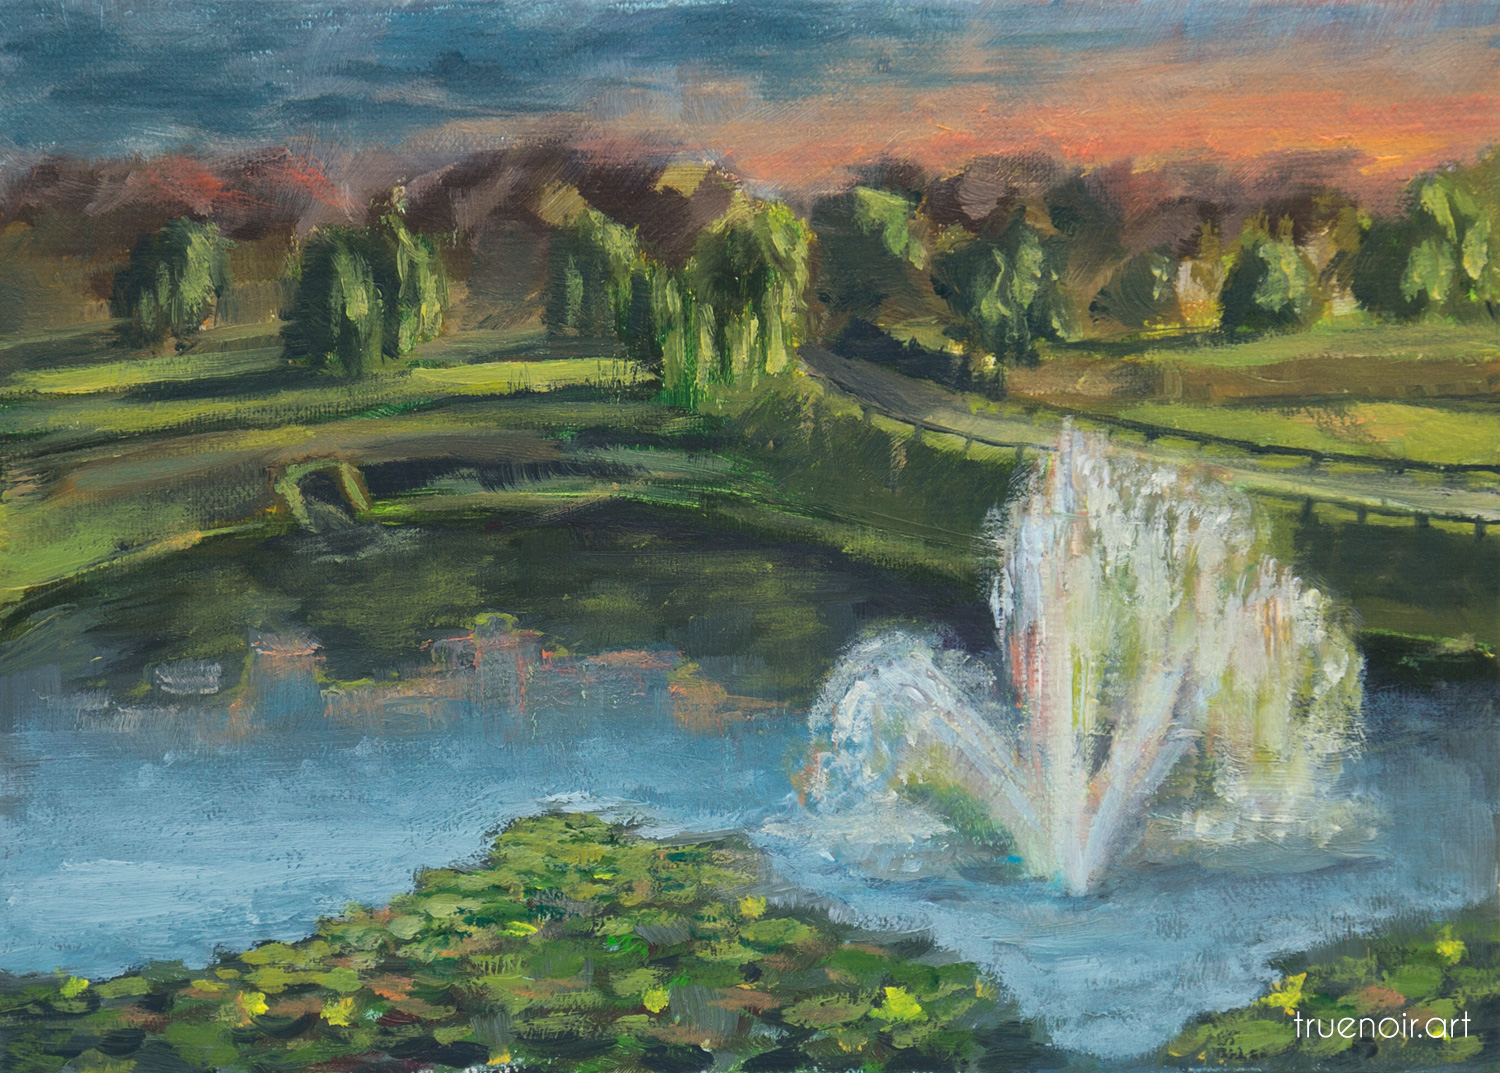 Original oil painting of a lake with a fountain at sunset.